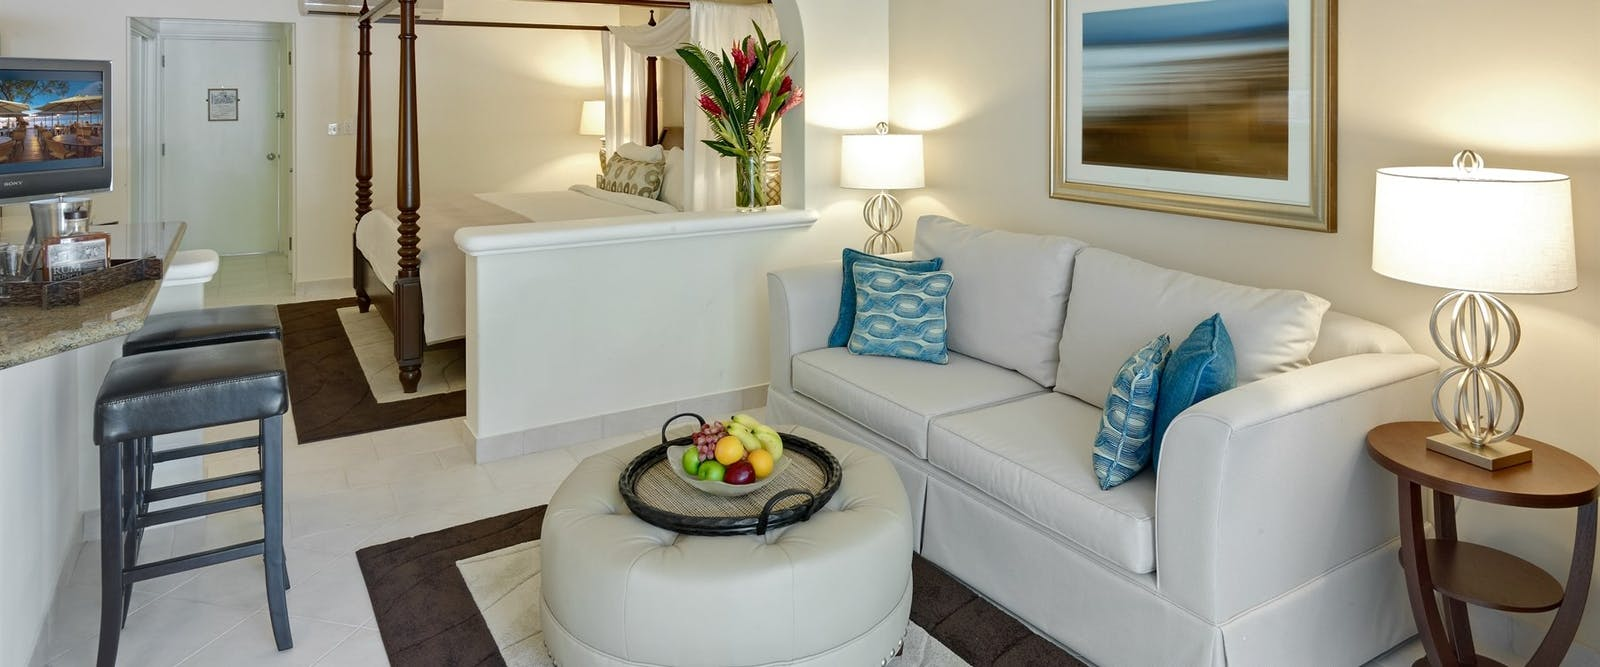 Ocean View Room Upper Floor at Colony Club by Elegant Hotels, Barbados, Caribbean